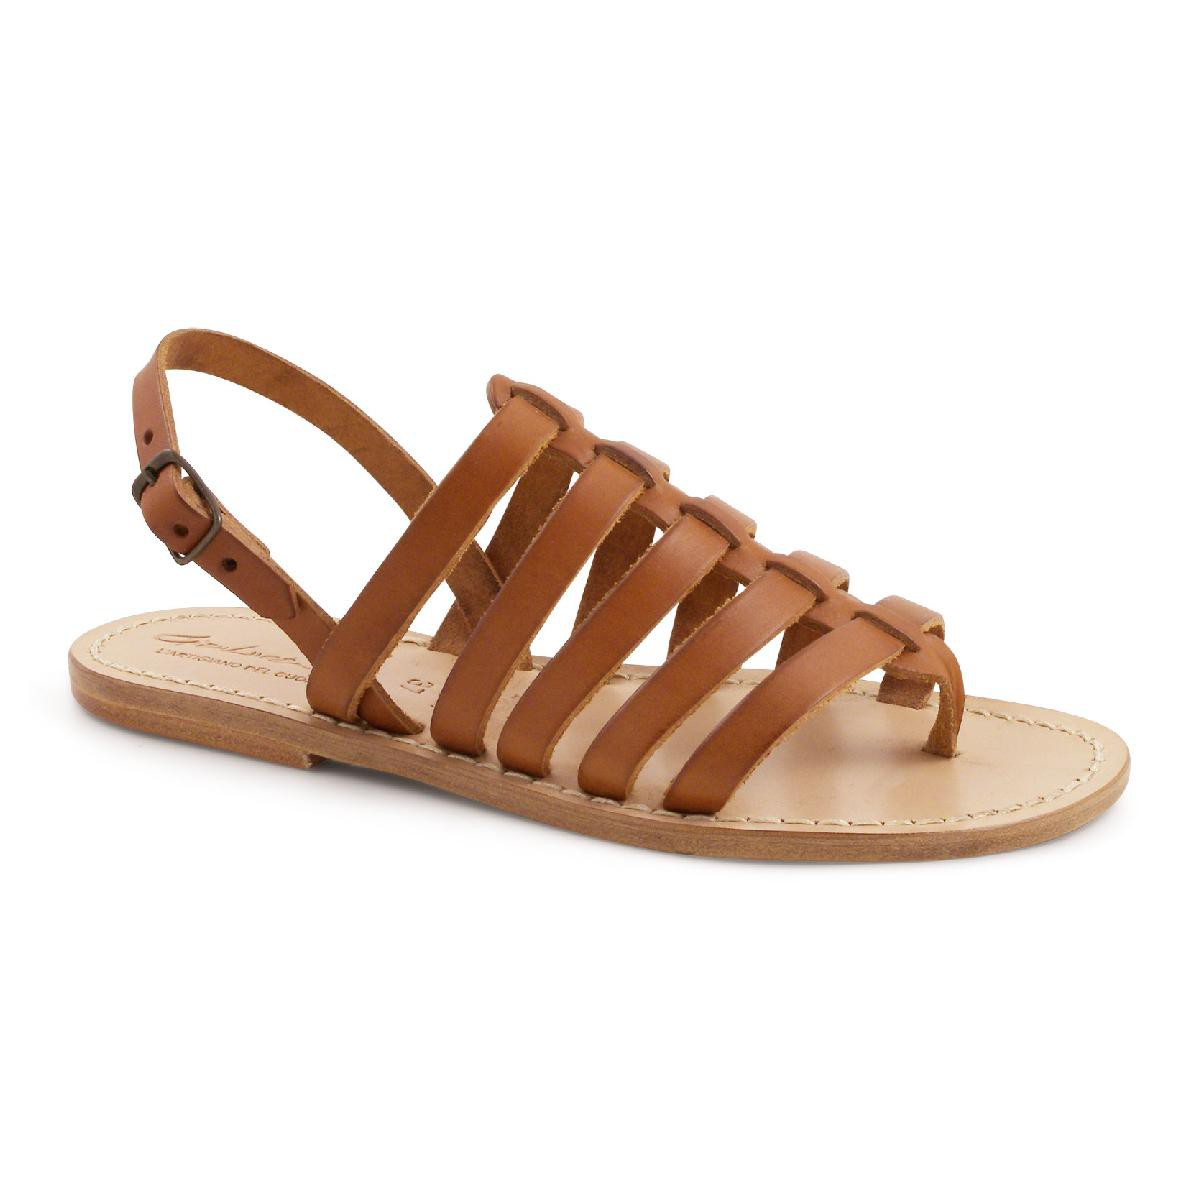 c8da1c70946 Gold flat sandals in real leather Handmade in Italy. Loading zoom